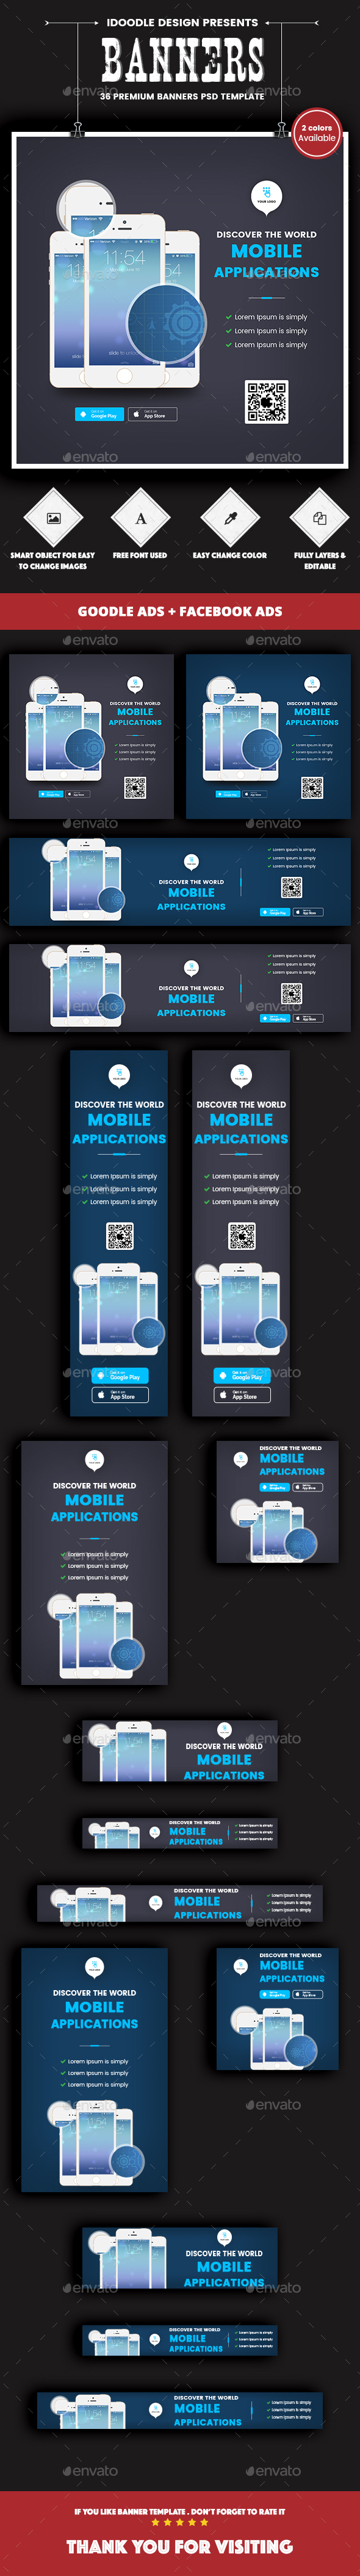 Mobile Applications Banners Ads - 2 Colors Available [36 PSD] - Banners & Ads Web Elements